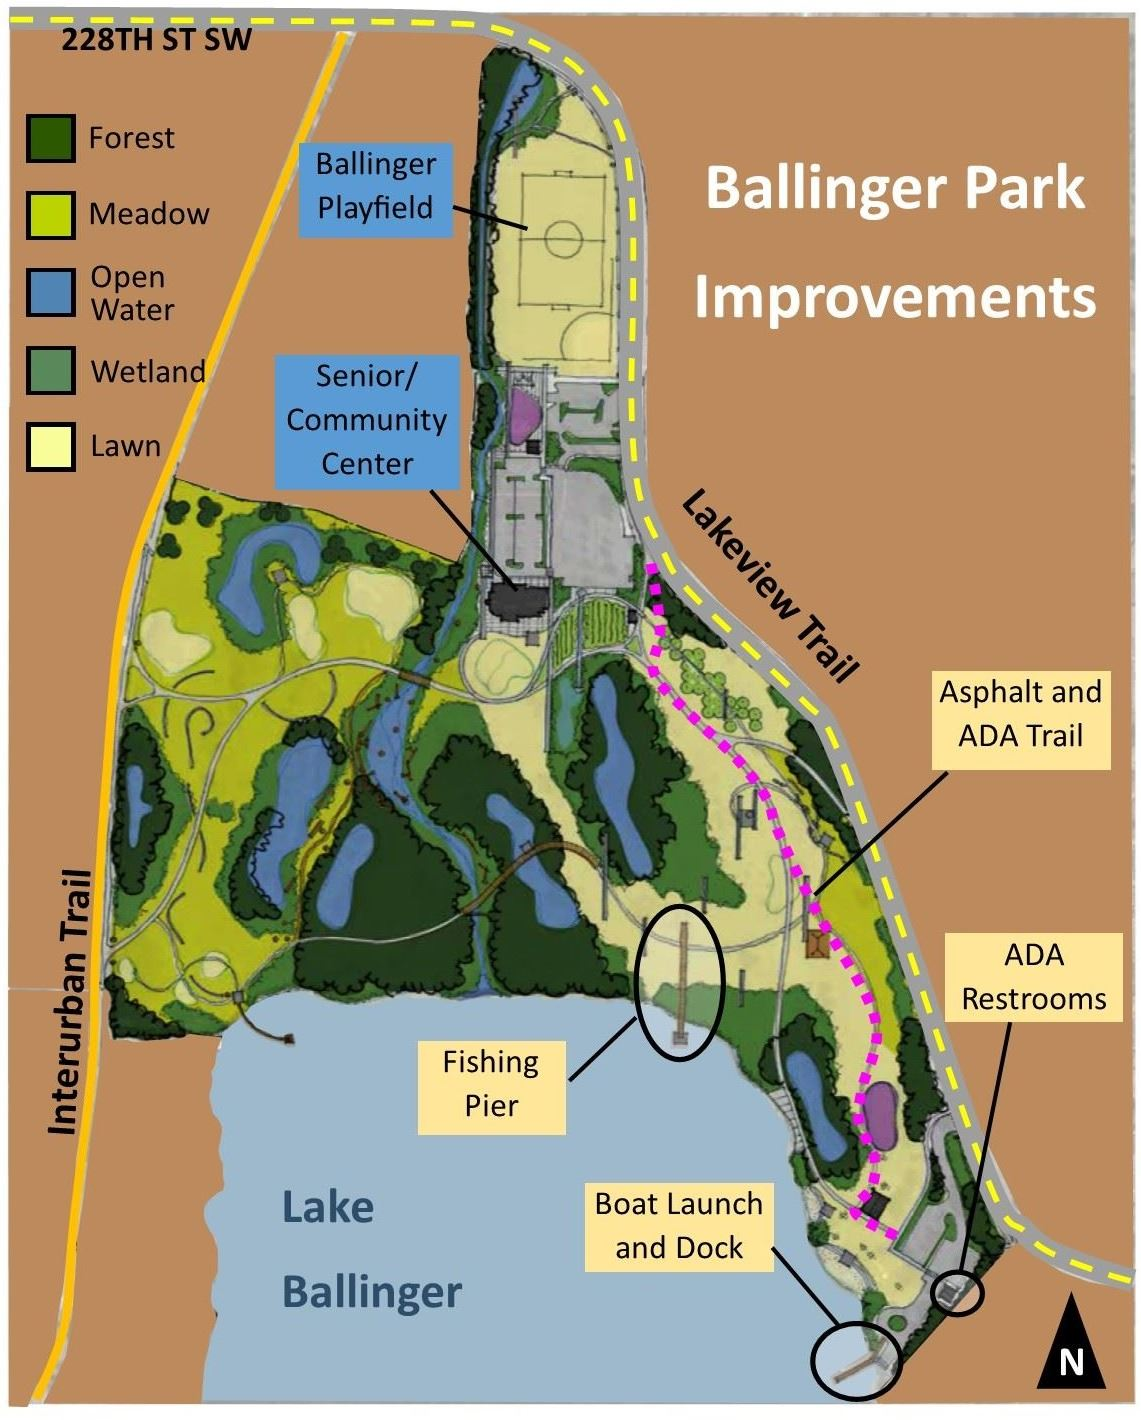 Map of Future Ballinger Park with Proposed Improvements